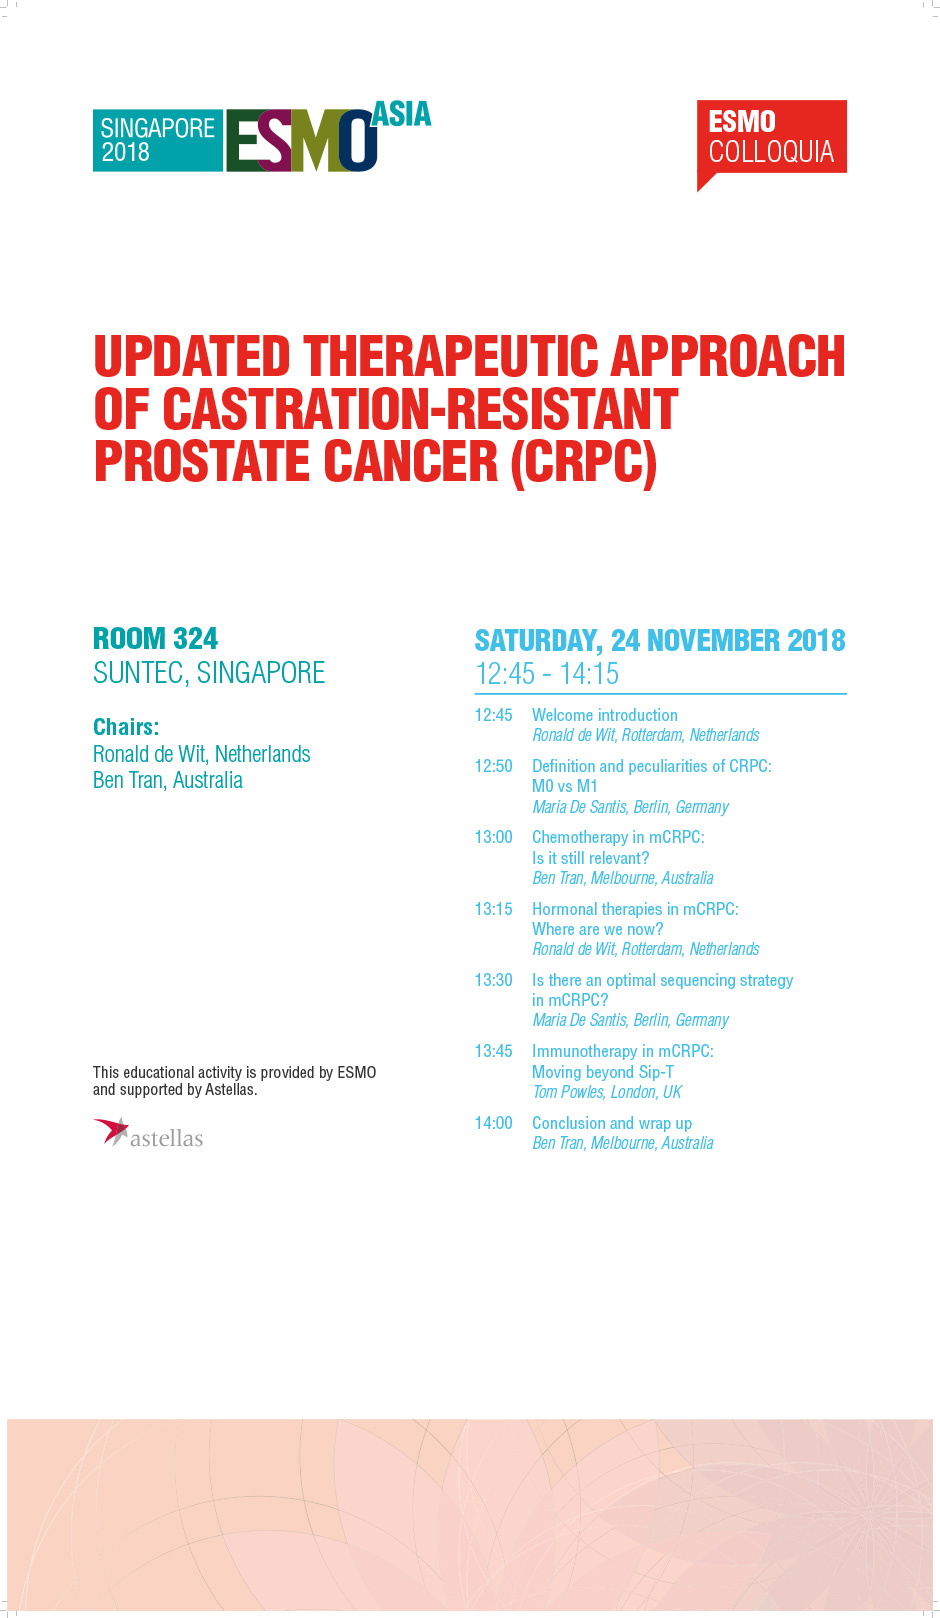 Updated Therapeutic Approach of Castration-Resistant Prostate Cancer (CRPC)